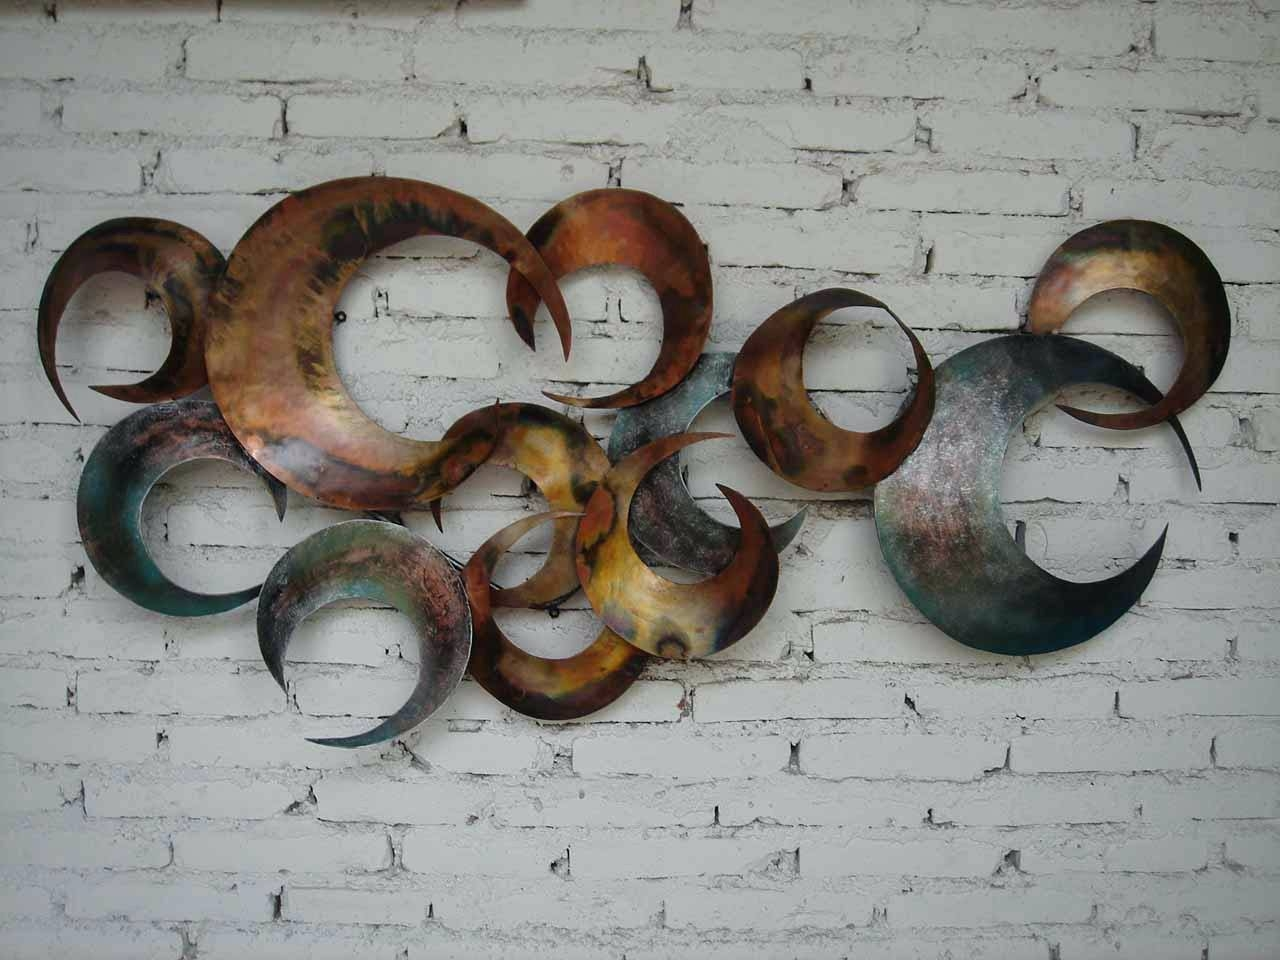 Wall Arts ~ Metal Wall Art Decor Tropical Contemporary Metal Wall With Regard To Current Contemporary Metal Wall Art Decor (View 18 of 20)